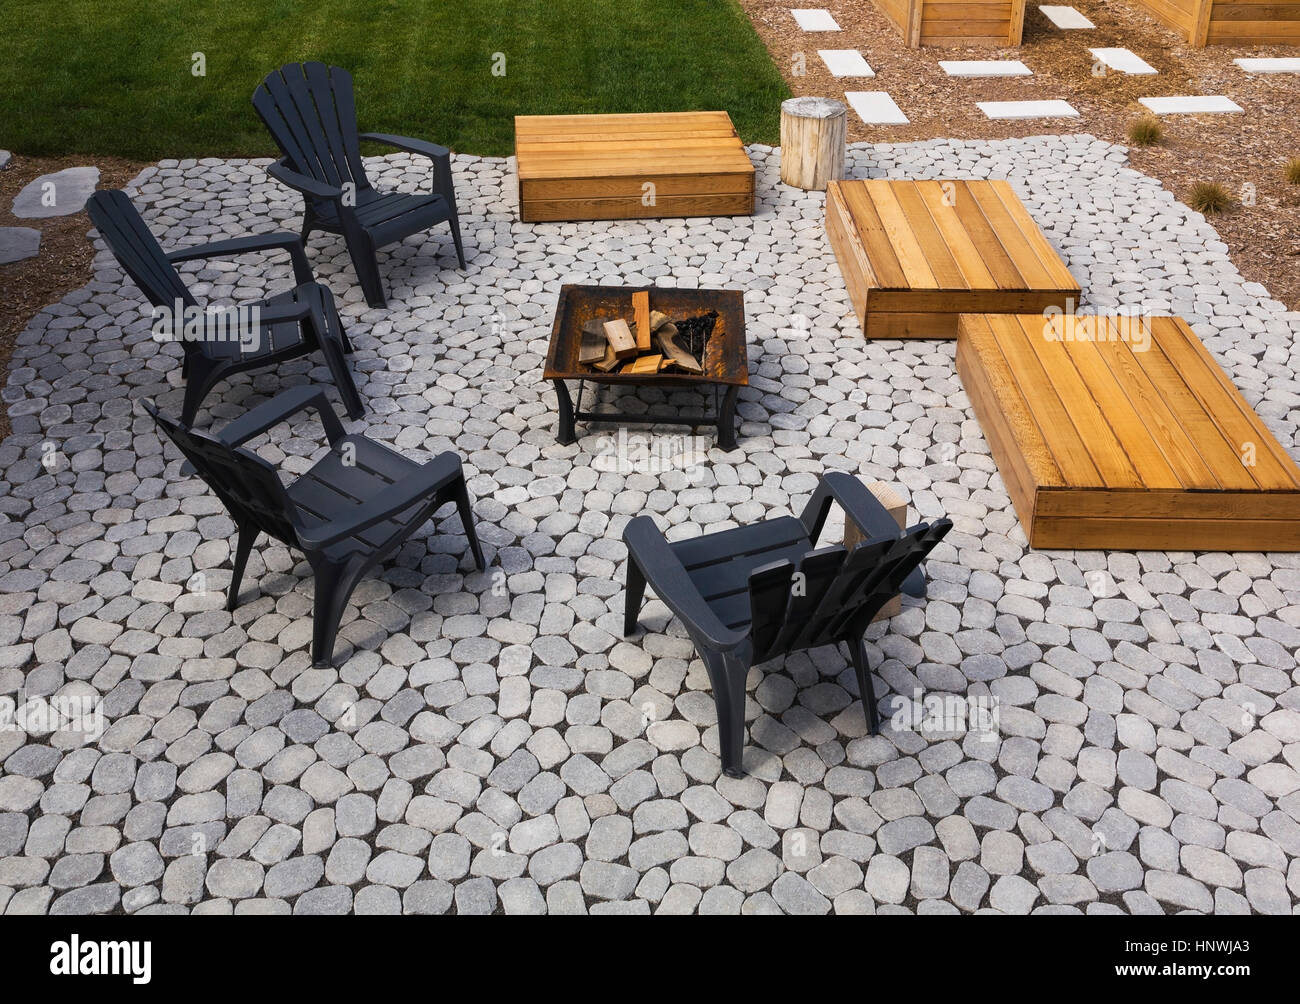 Paving Stone Patio With Adirondack Chairs, Red Cedar Wooden Bench Platforms  Around A Metal Firepit In Backyard, Quebec, Canada